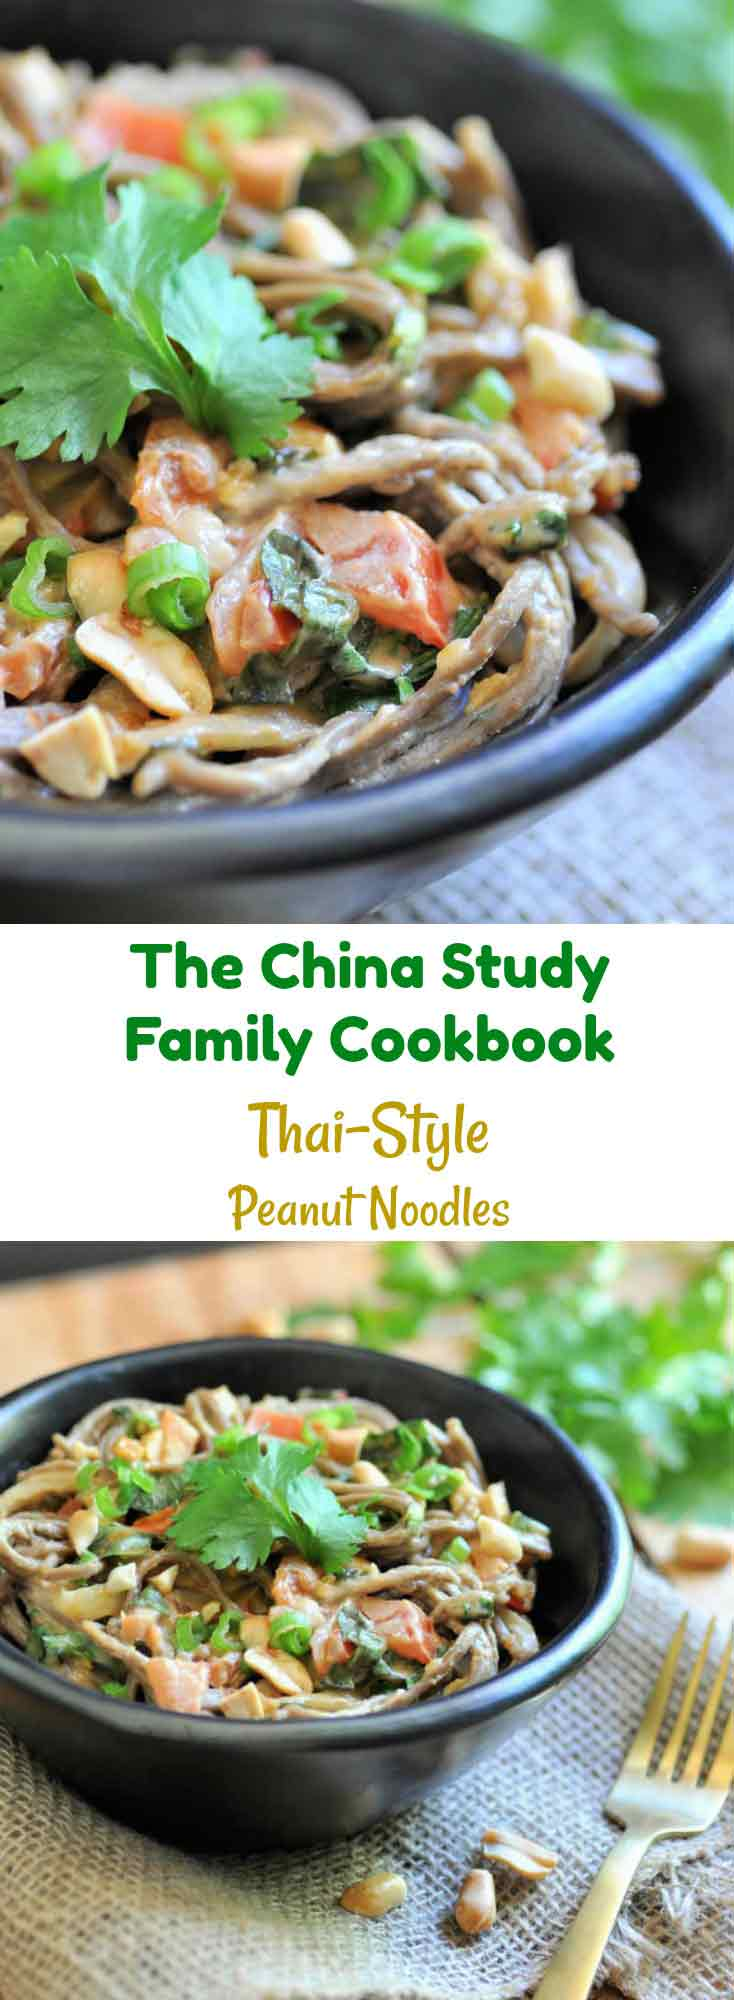 A healthy and delicious Thai-Style Peanut Noodles recipe from The China Study Family Cookbook!